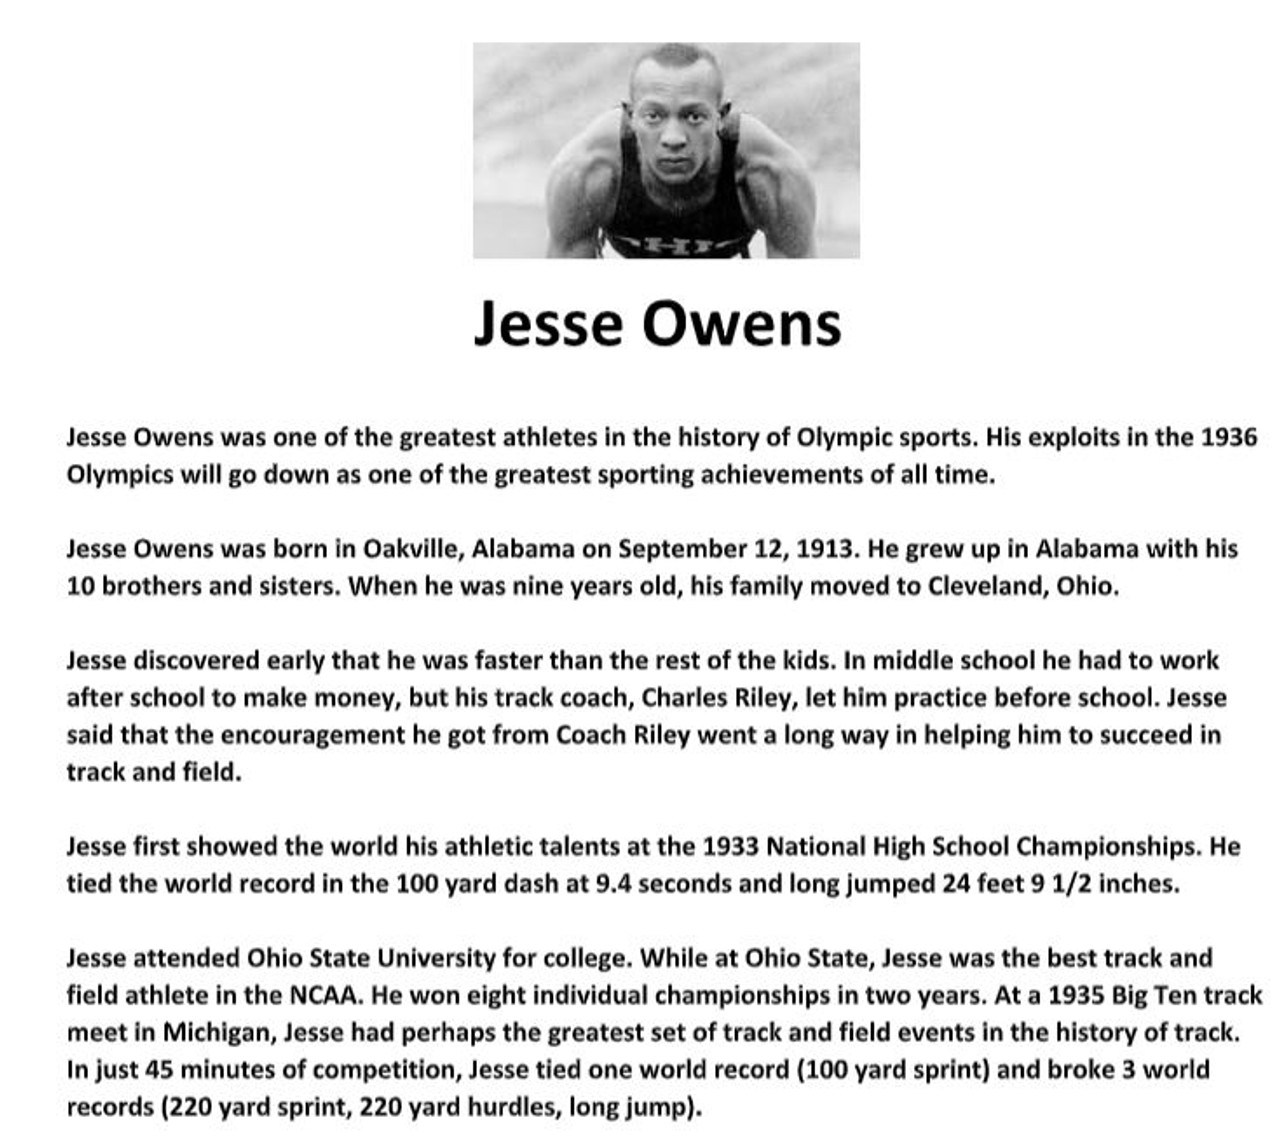 medium resolution of Jesse Owens Biography Article and Assignment Worksheet - Amped Up Learning